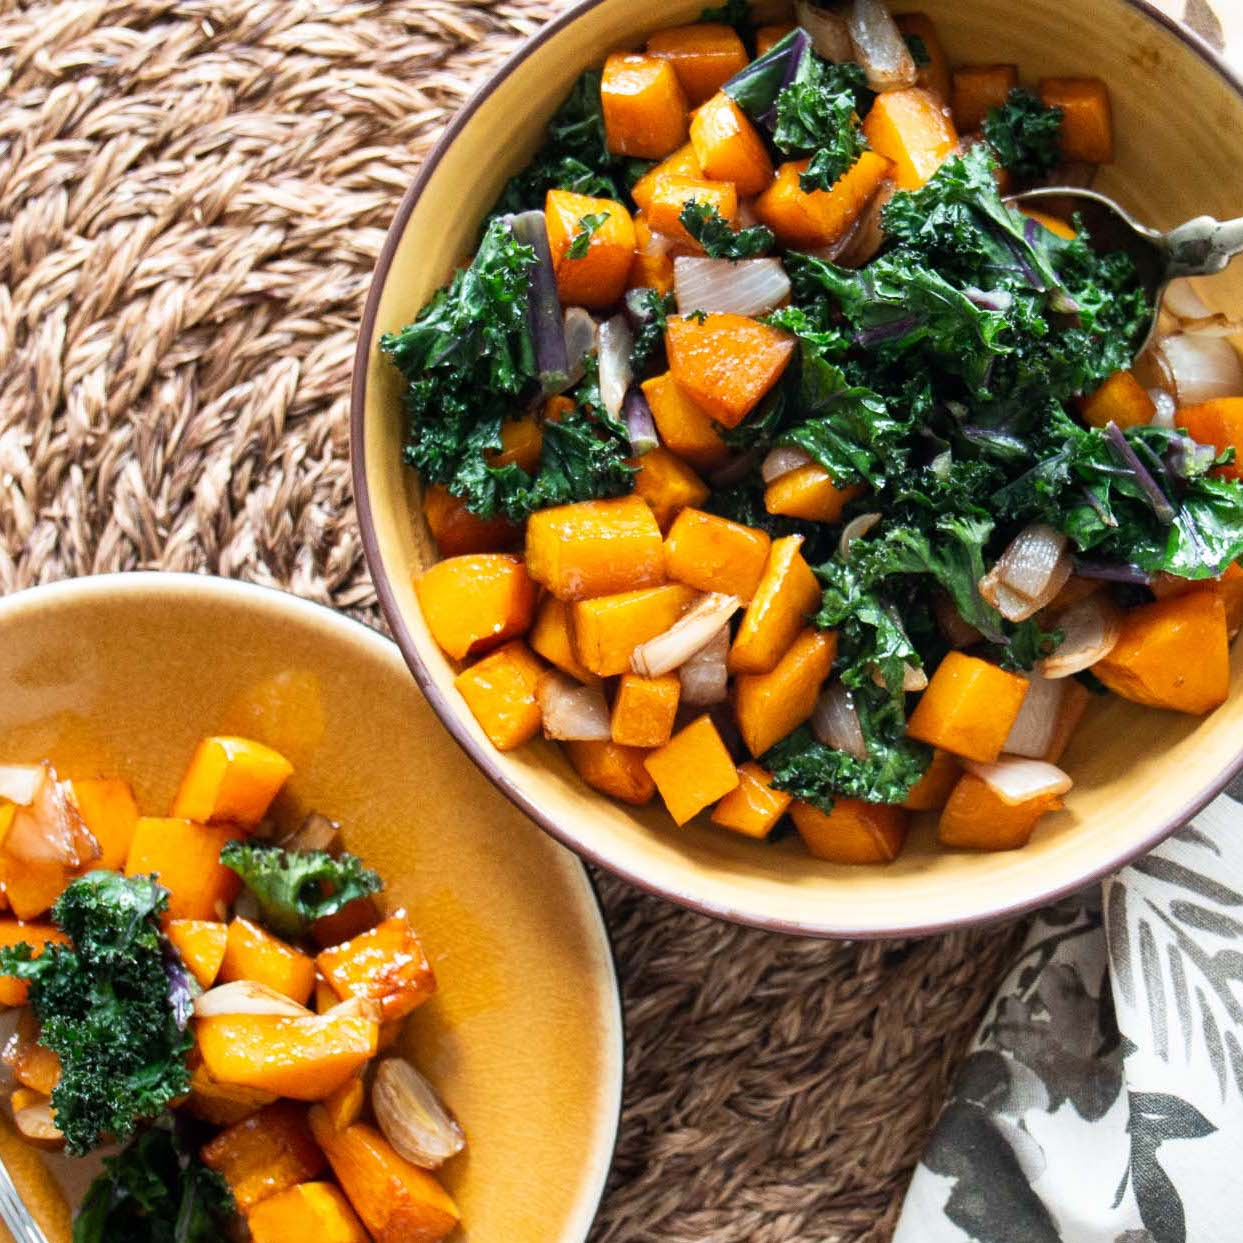 serving bowl and plate of Balsamic Butternut Squash with Kale